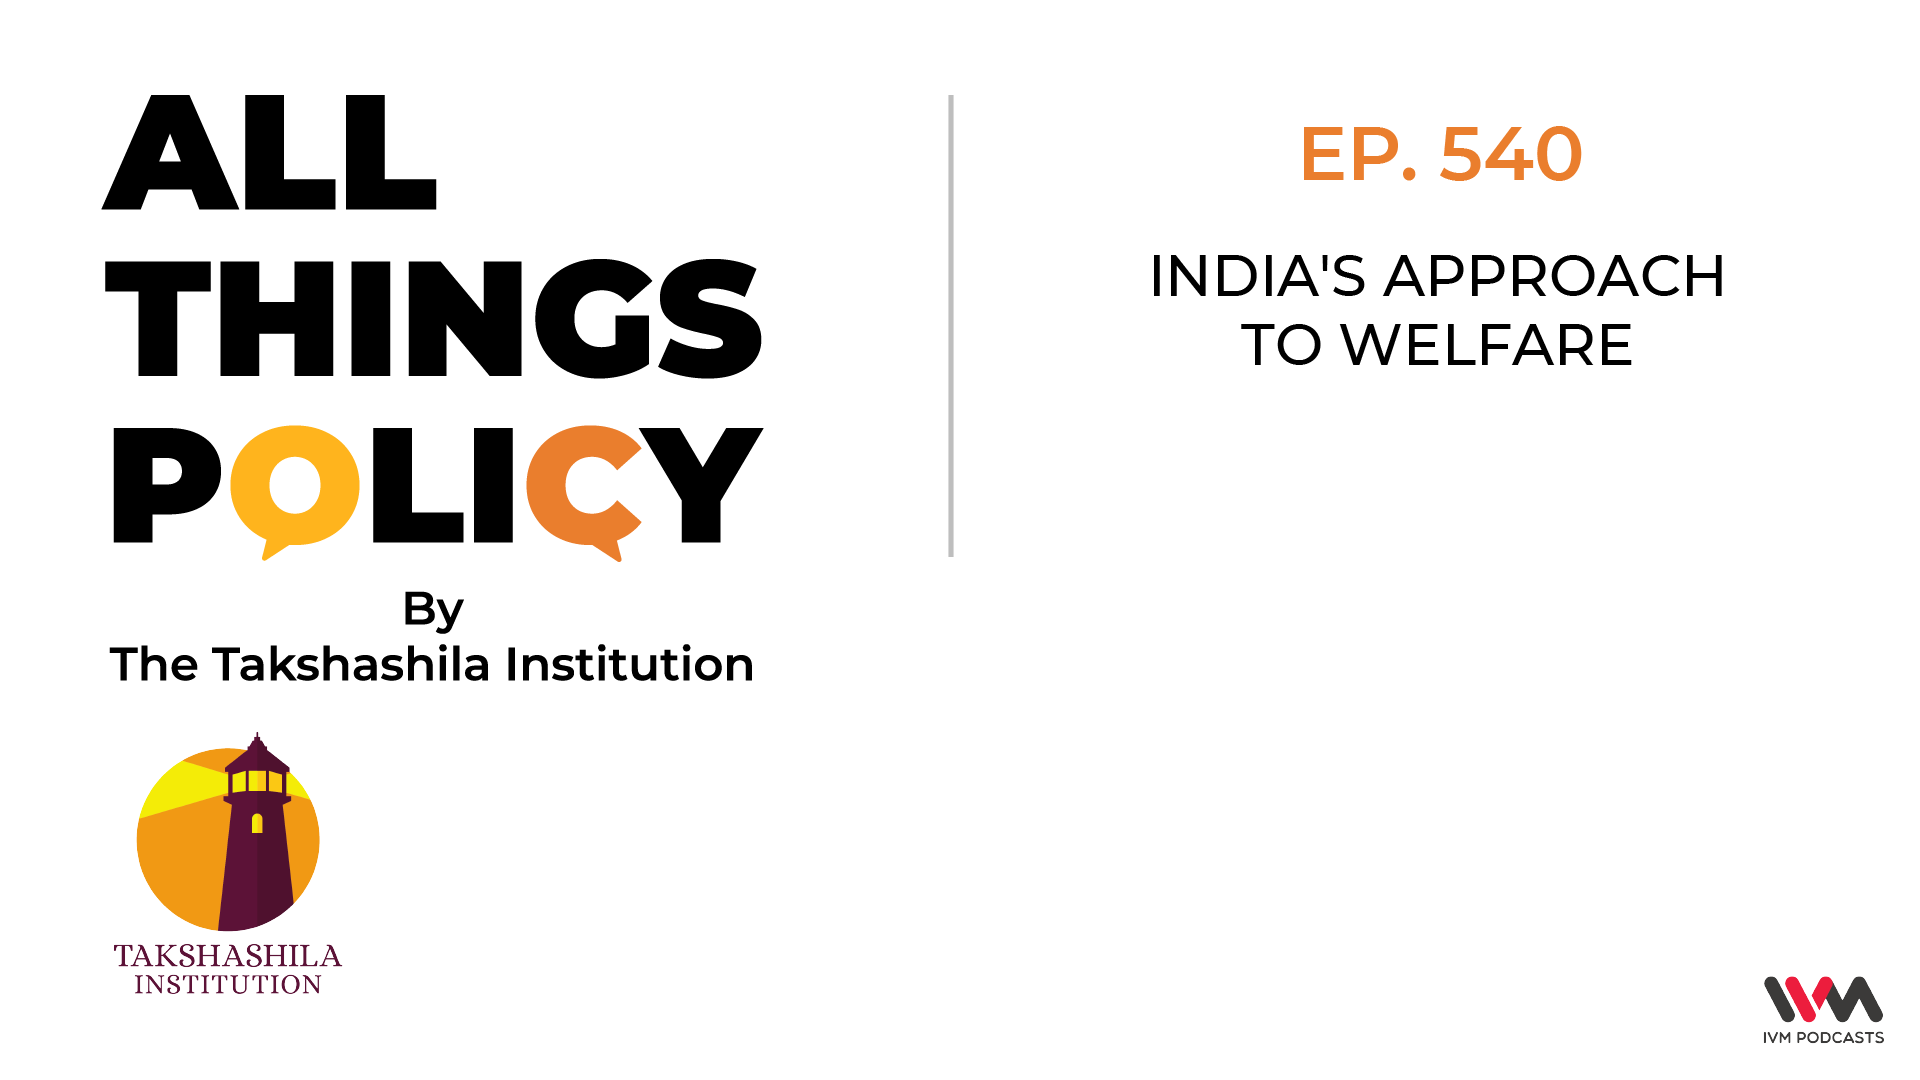 Ep. 540: India's Approach to Welfare